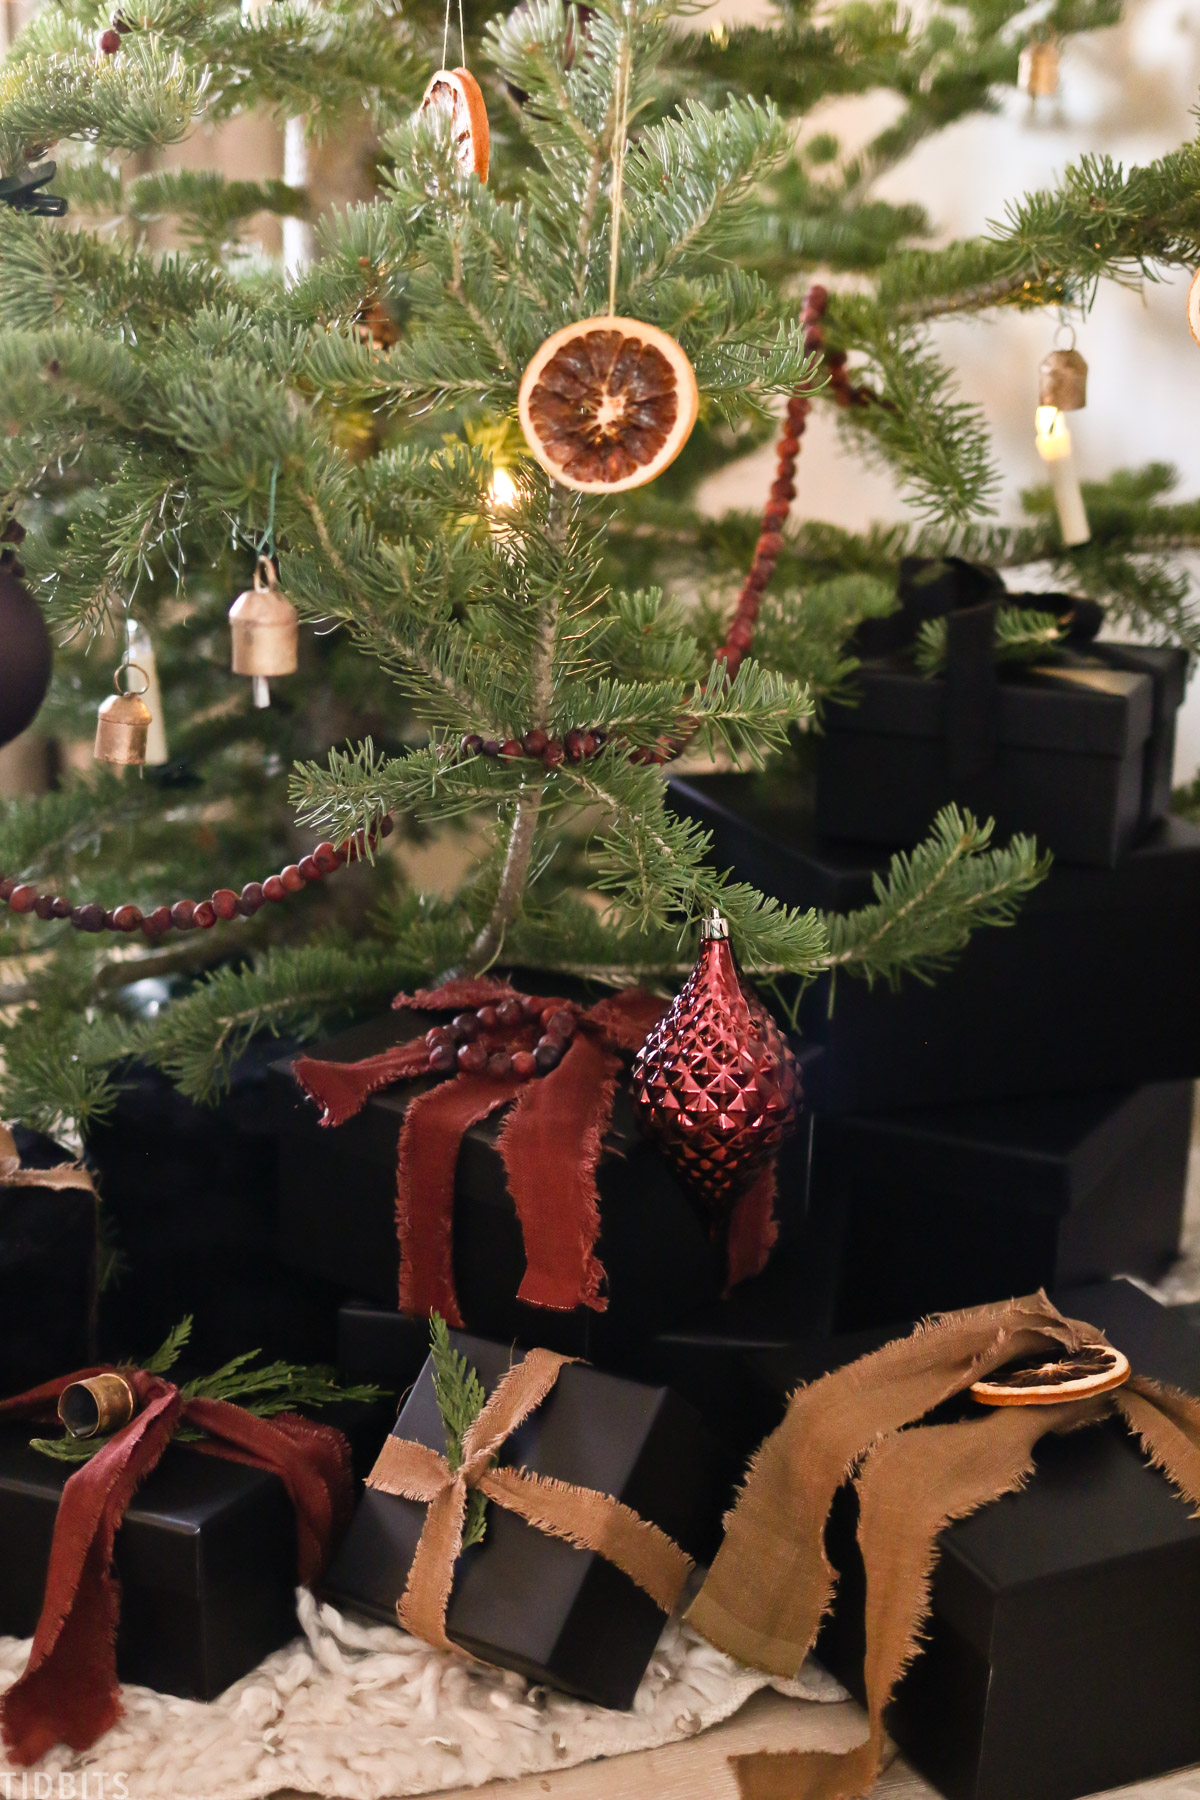 Christmas ornaments, candles and sliced oranges on a Christmas tree with a linen ribbon wrapped around presents under the tree